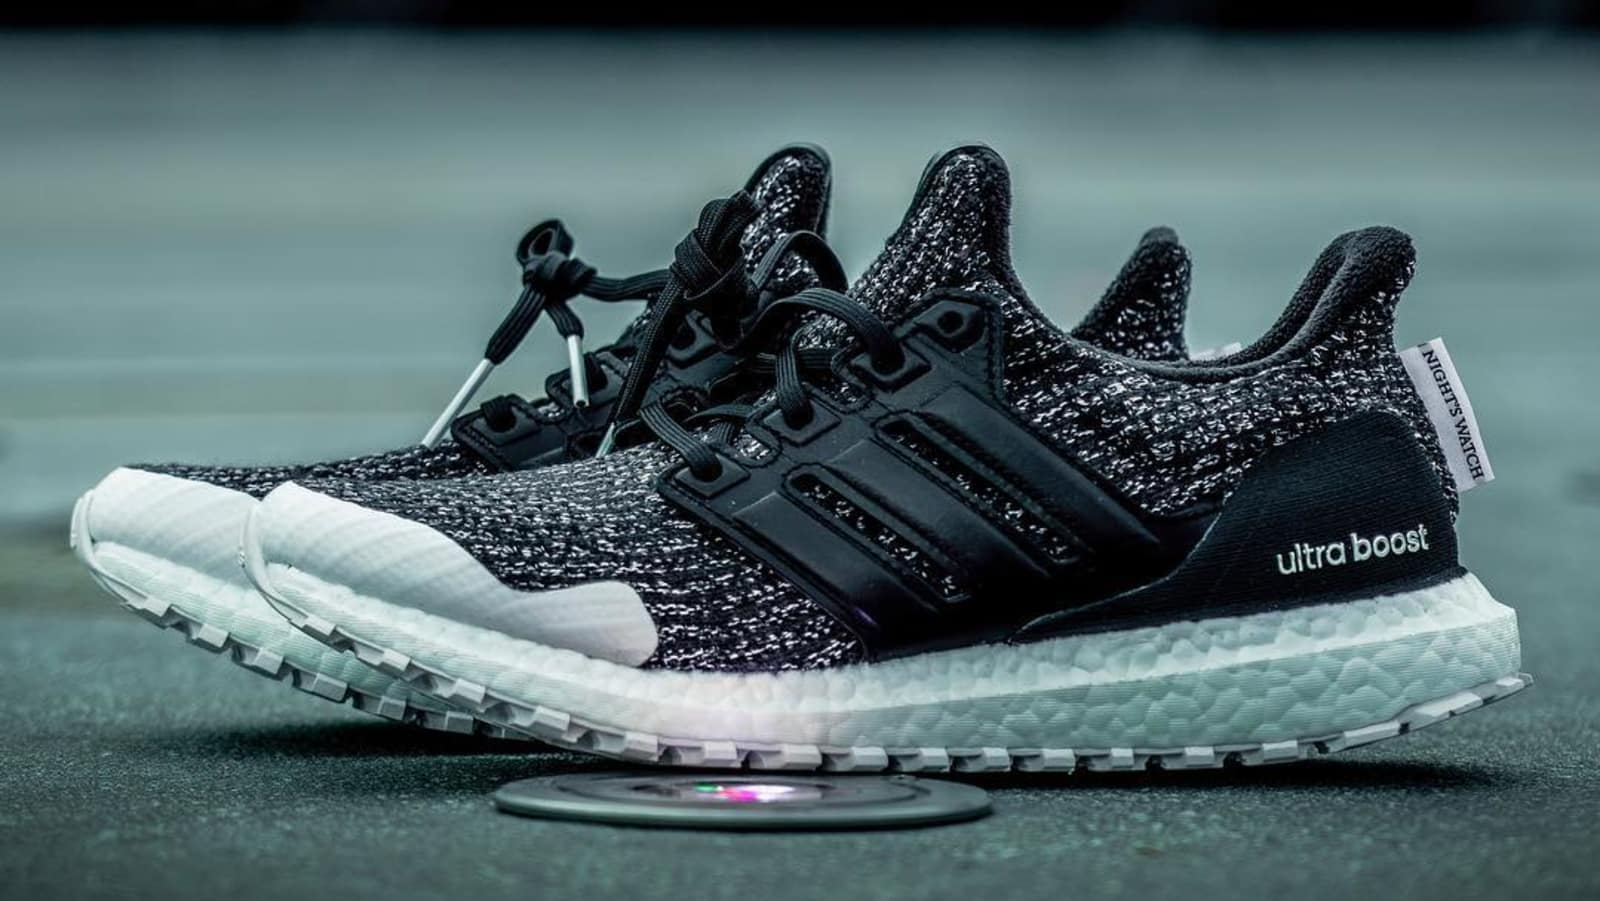 game-of-thrones-adidas-ultra-boost-nights-watch-pair